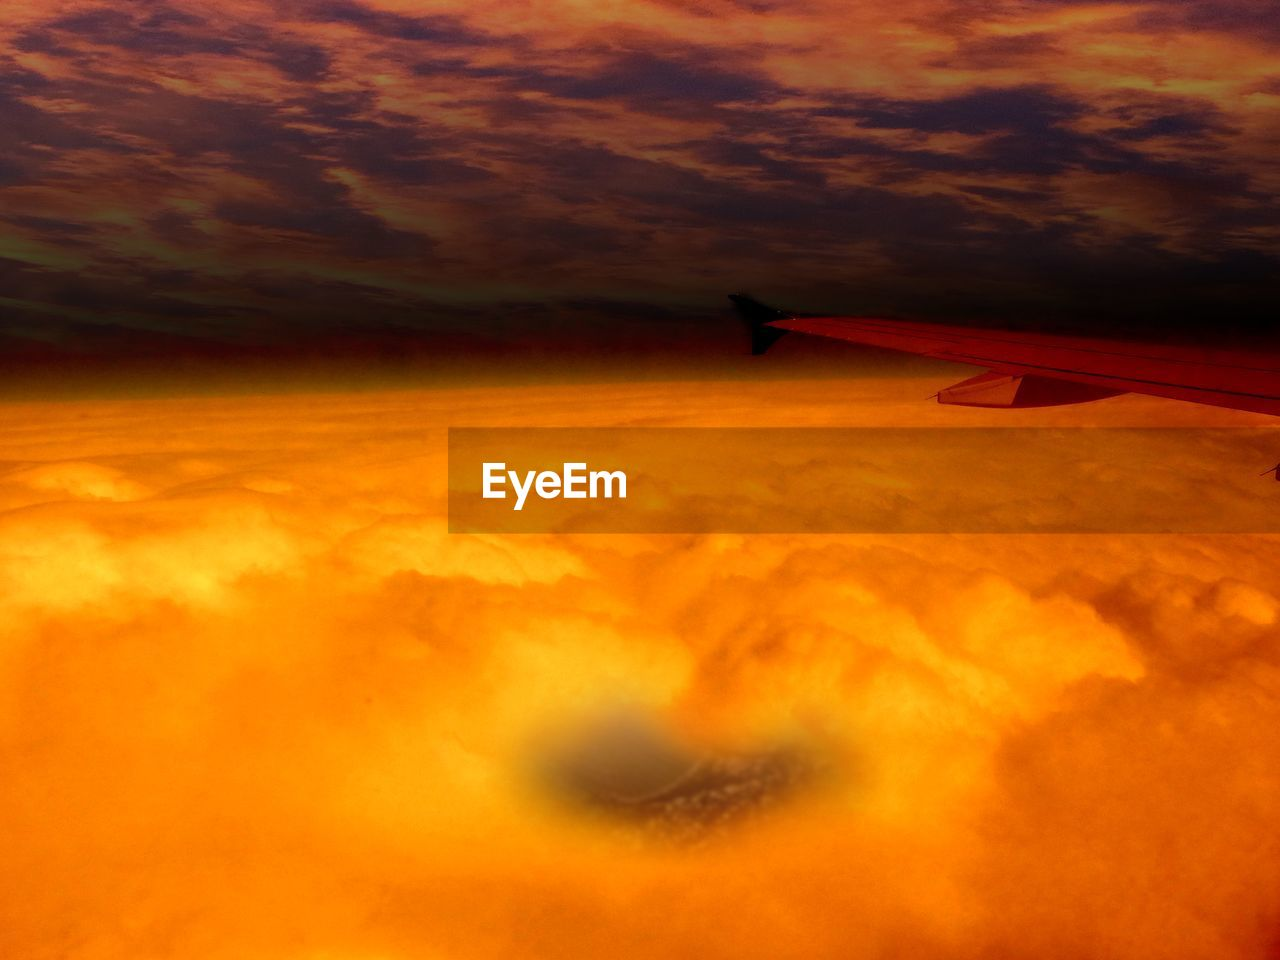 sunset, airplane, transportation, cloud - sky, orange color, sky, air vehicle, mode of transport, nature, journey, flying, airplane wing, scenics, no people, beauty in nature, outdoors, aircraft wing, day